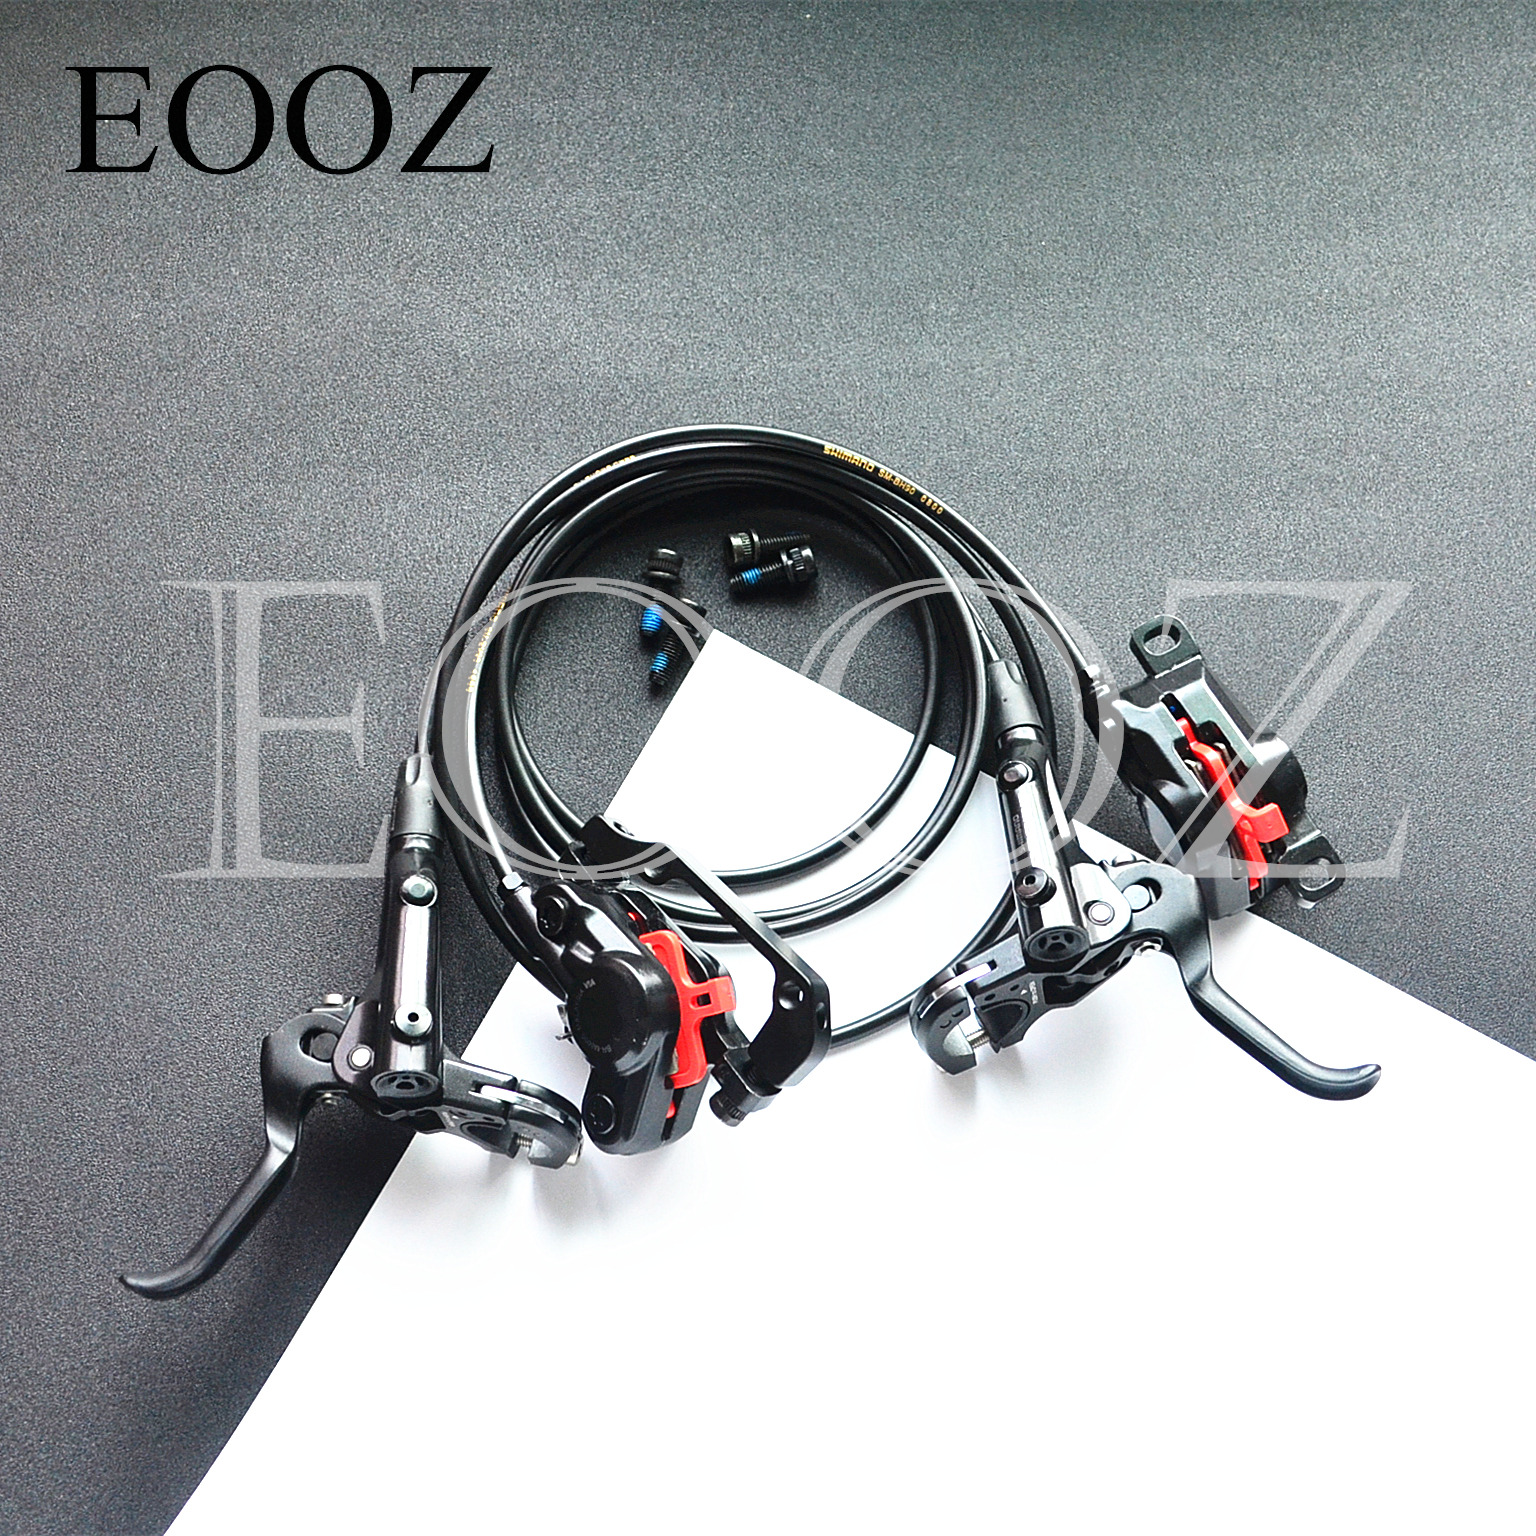 SHIMANO DEORE BL//BR M6000 Hydaulic MTB Bicycle Disc Brake Front /& Rear